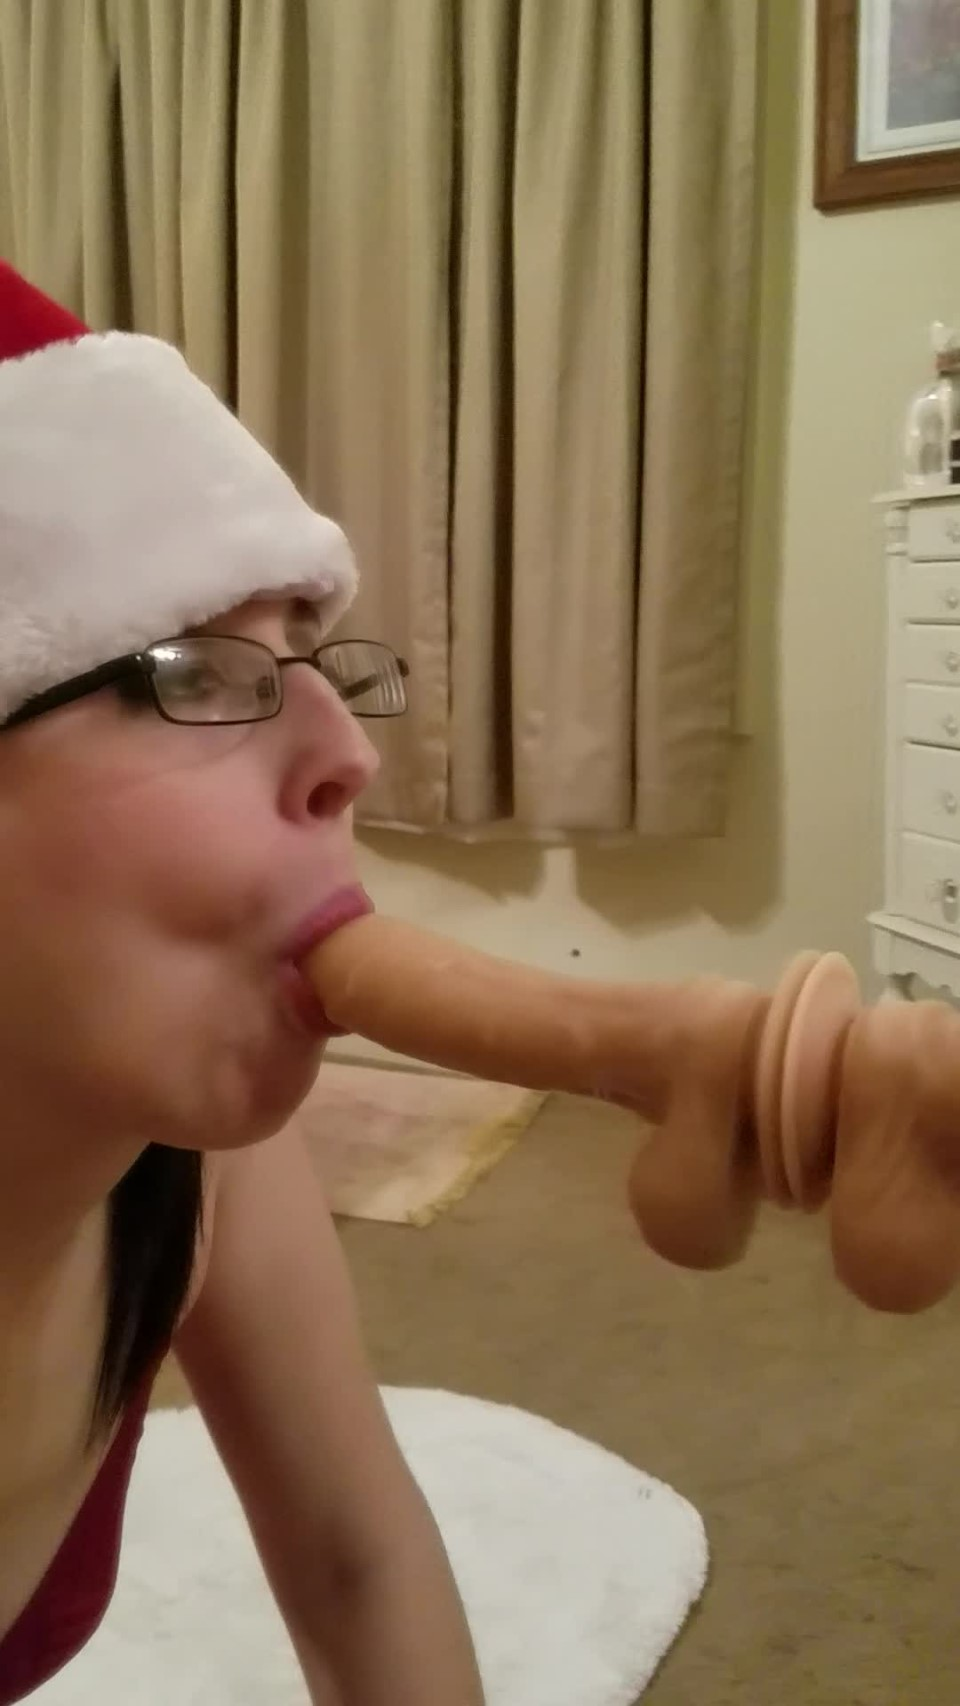 [Full HD] molly madison sucking cock on mirror Molly Madison - ManyVids-00:07:16 | Dildo Sucking, Blowjob, Mirror, MILF, Older Man / Younger Women - 897,2 MB